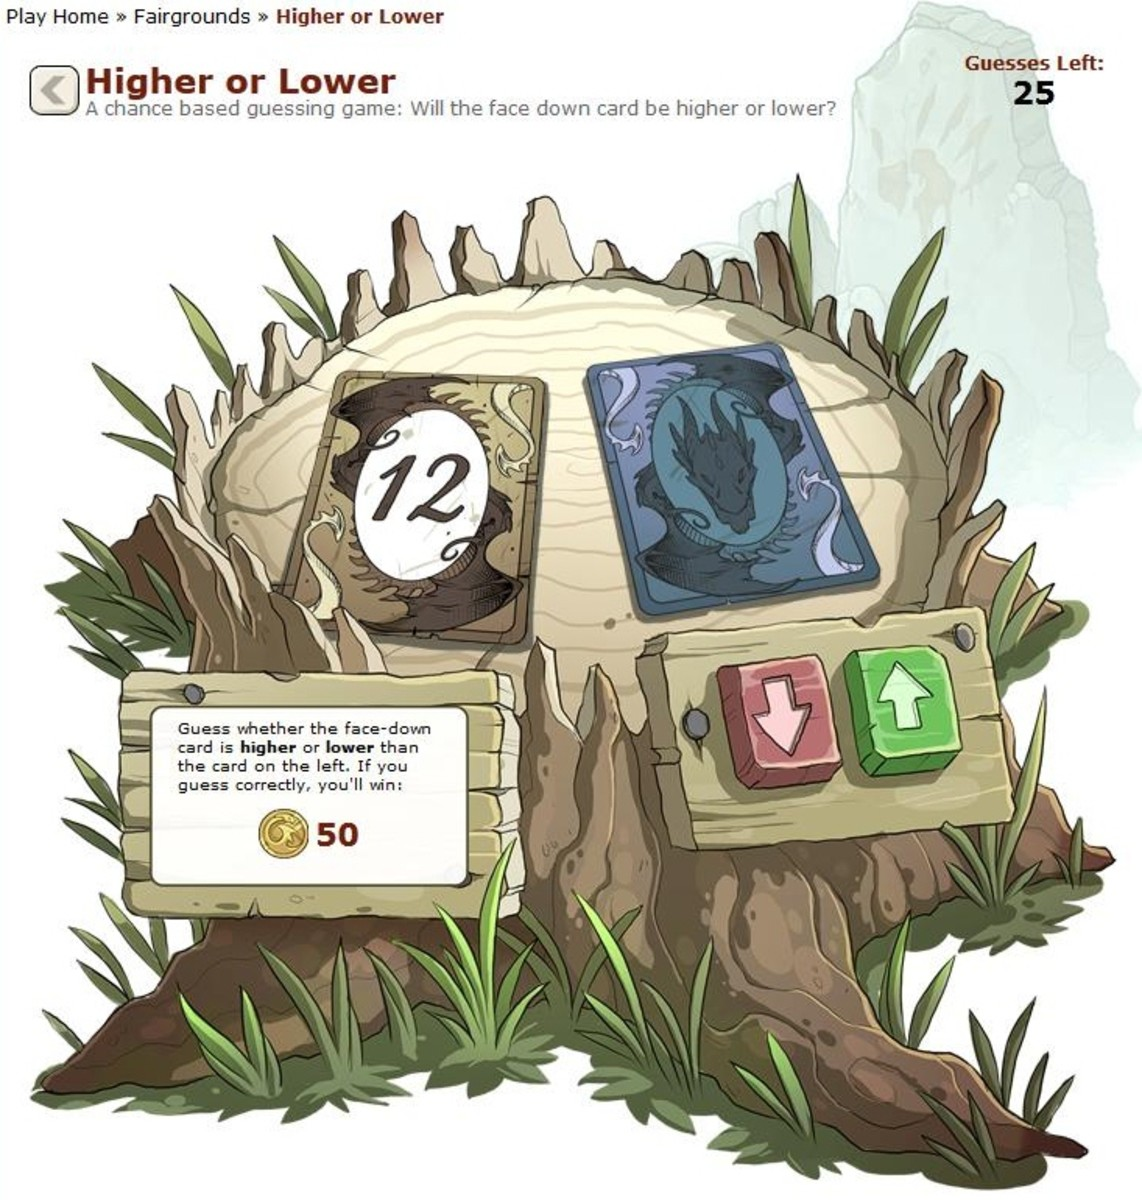 Higher or Lower isn't only easy to play - it's addictive, especially when you win!